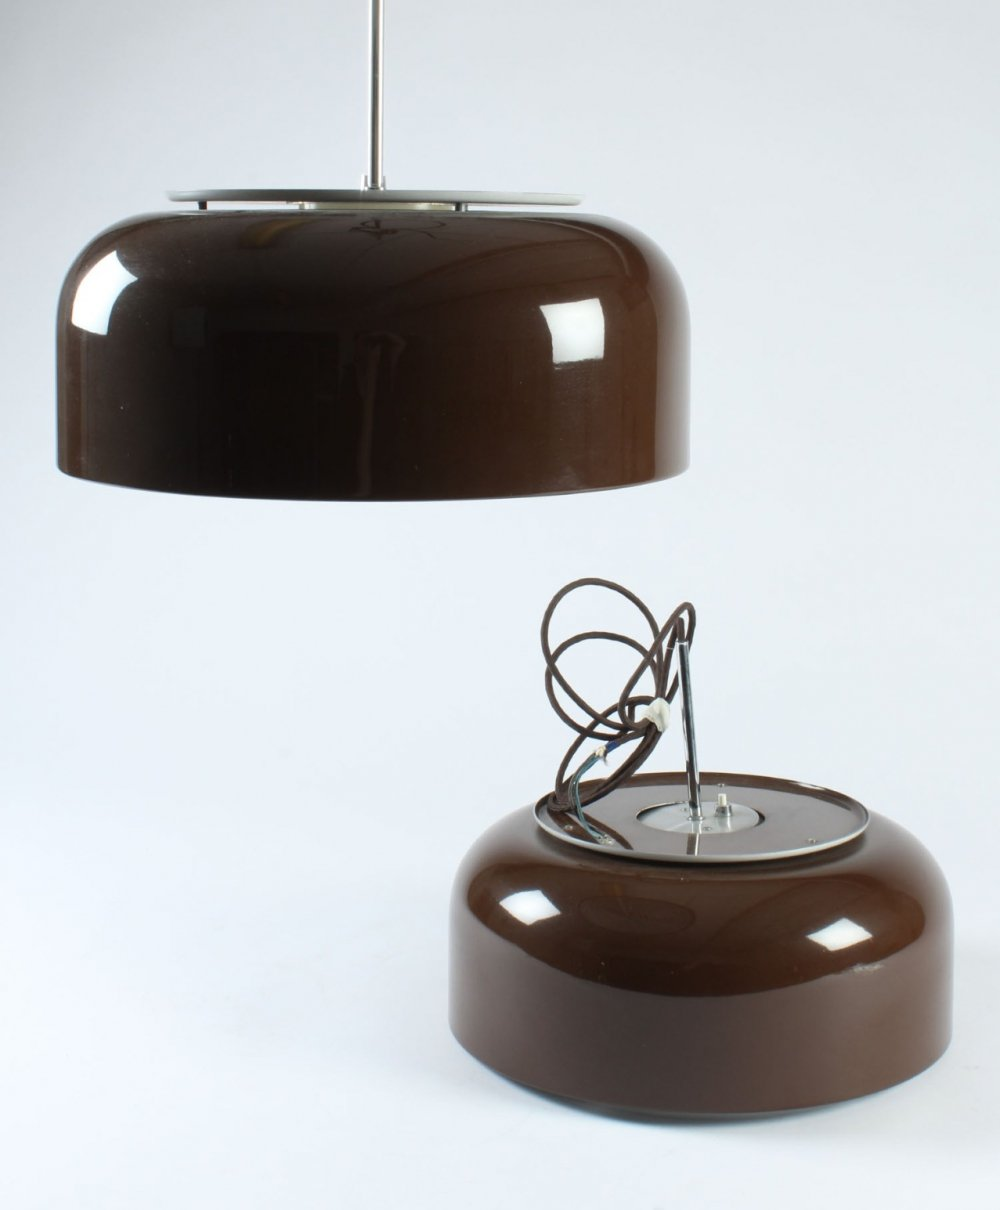 2 x Knubbling hanging lamp by Anders Pehrson for Ateljé Lyktan, 1970s